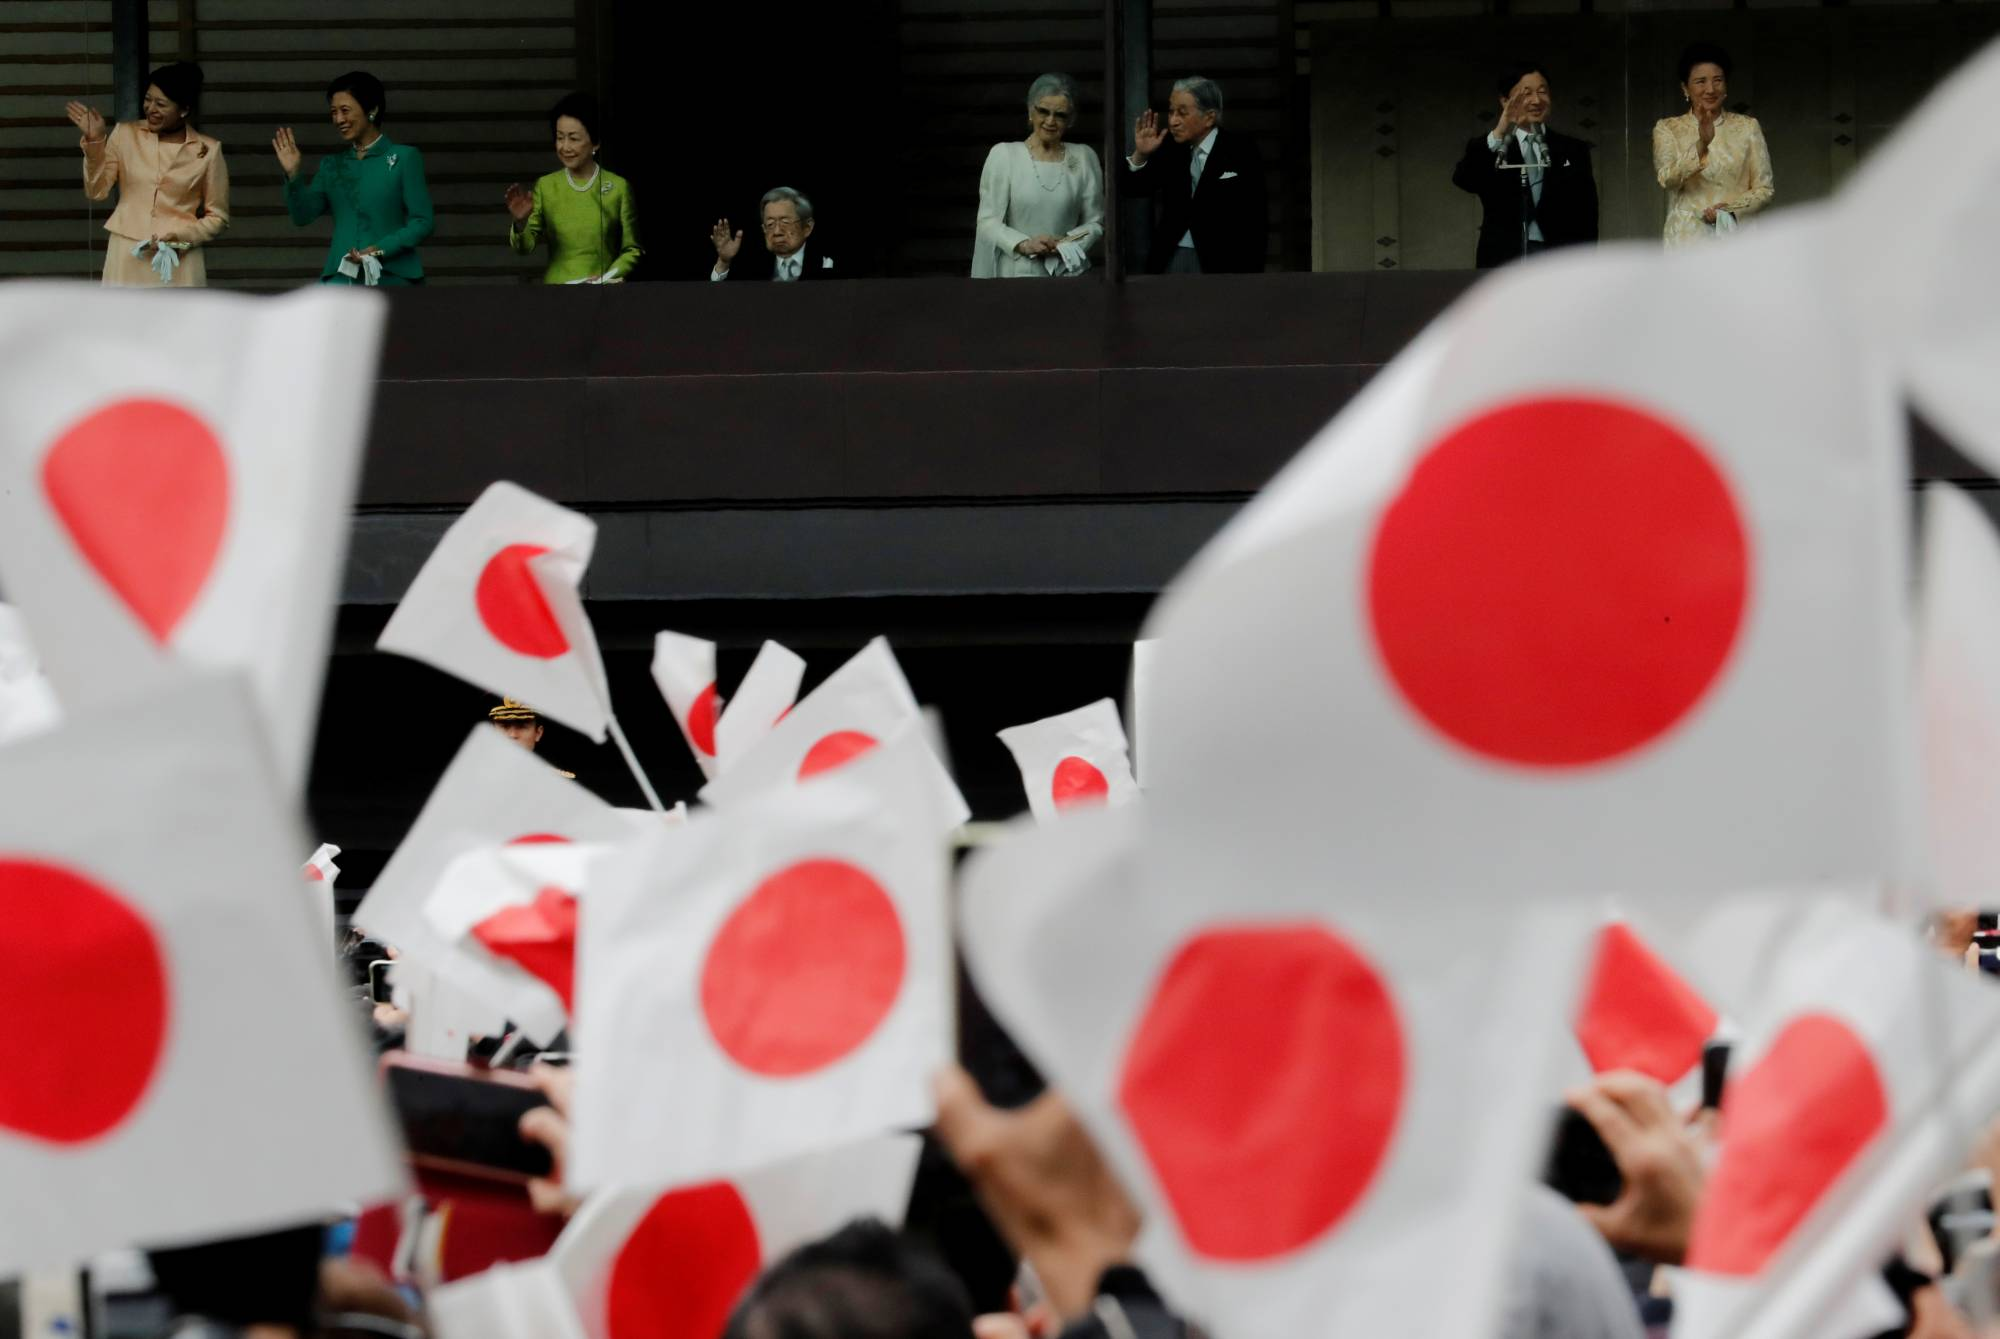 Members of the imperial family wave to well-wishers during a public appearance for New Year celebrations at the Imperial Palace in Tokyo on Jan. 2. | REUTERS